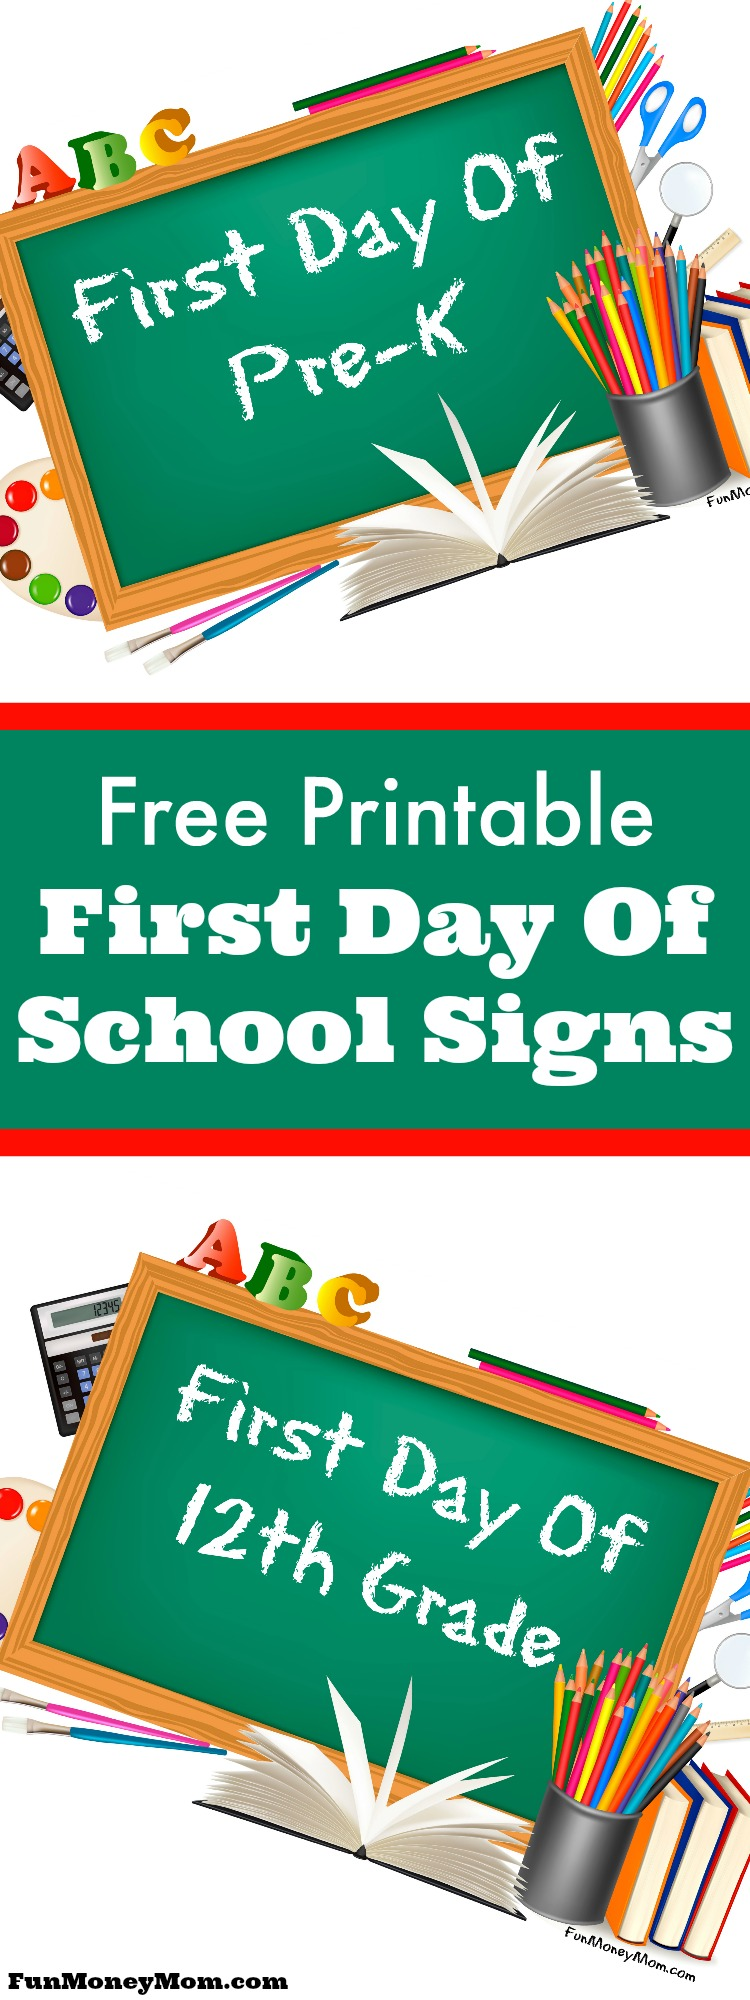 photograph regarding First Day of Pre K Sign Printable referred to as Absolutely free Printable Initially Working day Of College Indications - Entertaining Fiscal Mother